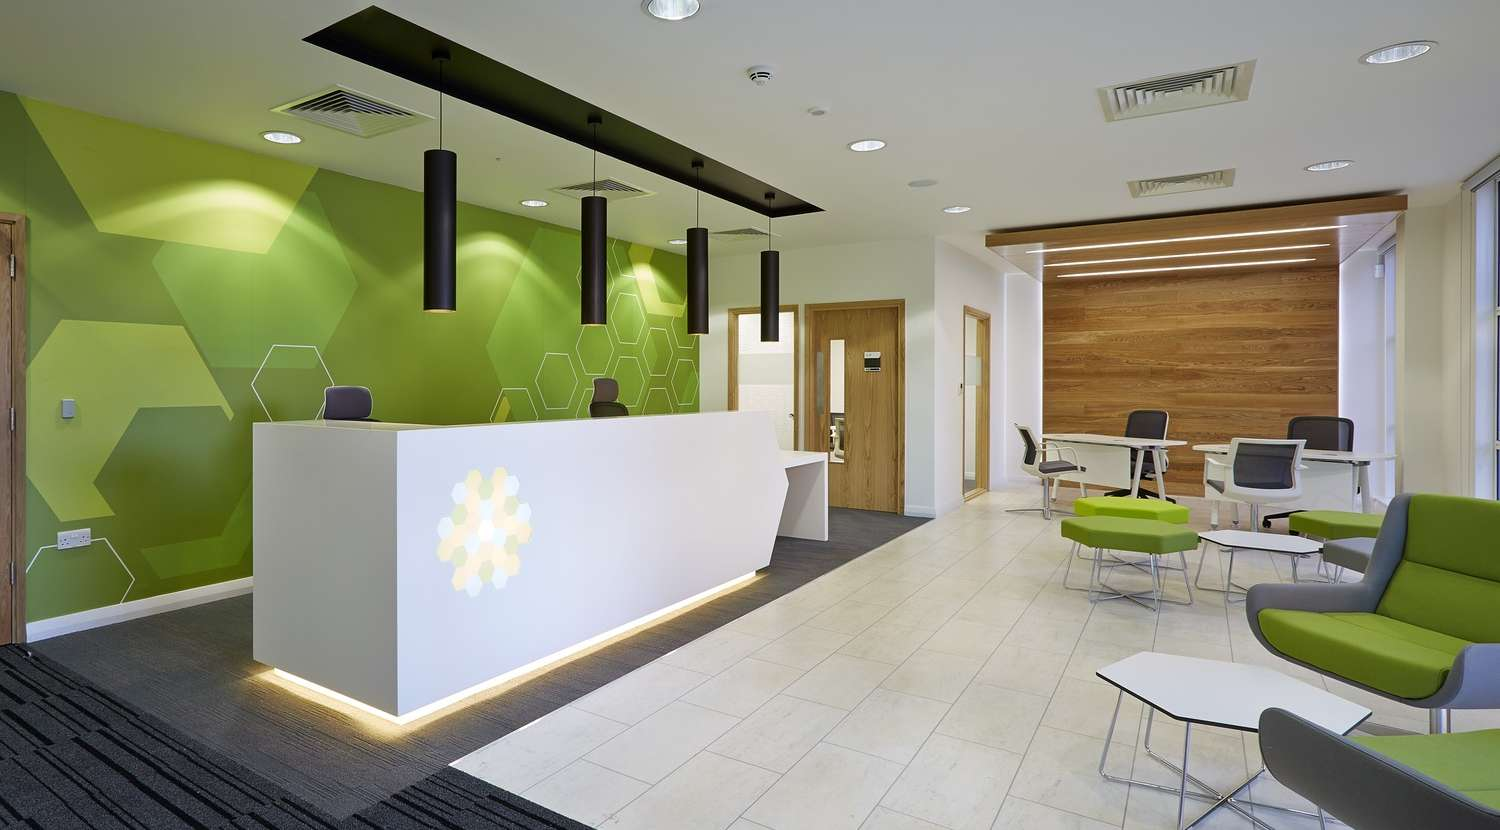 Reception area with green wall